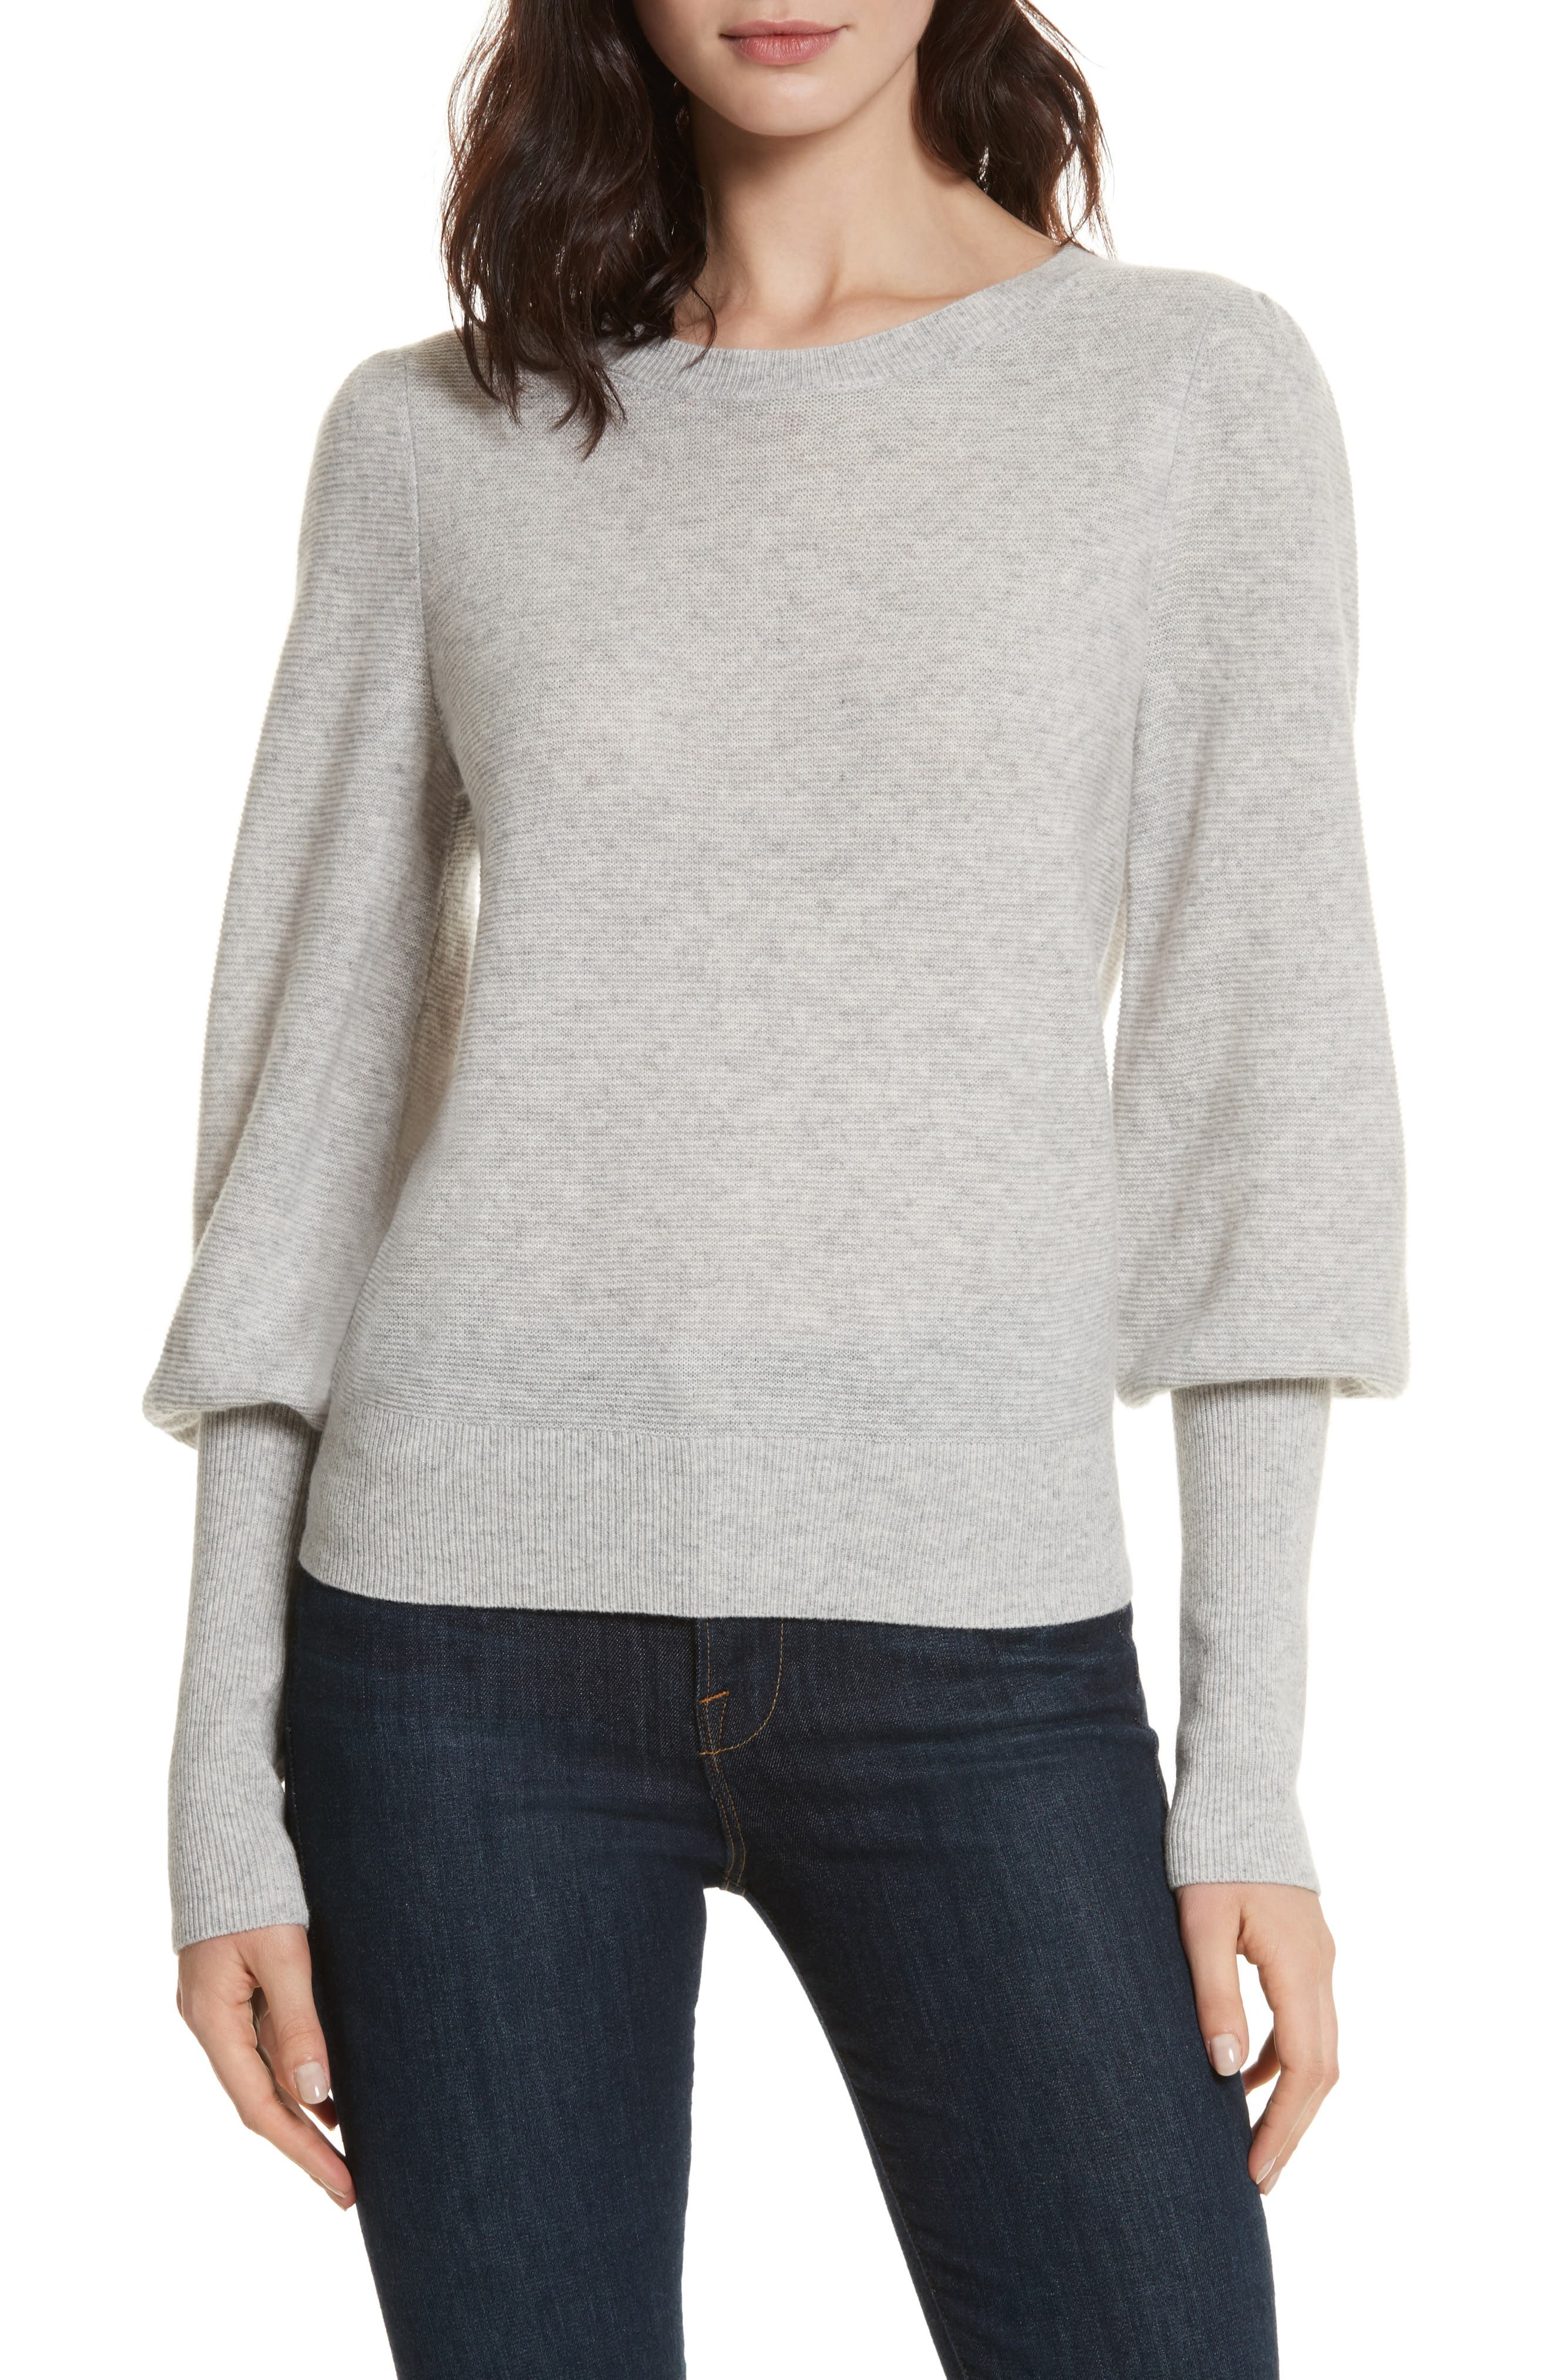 Noely Wool and Cashmere Sweater,                         Main,                         color, Light Heather Grey